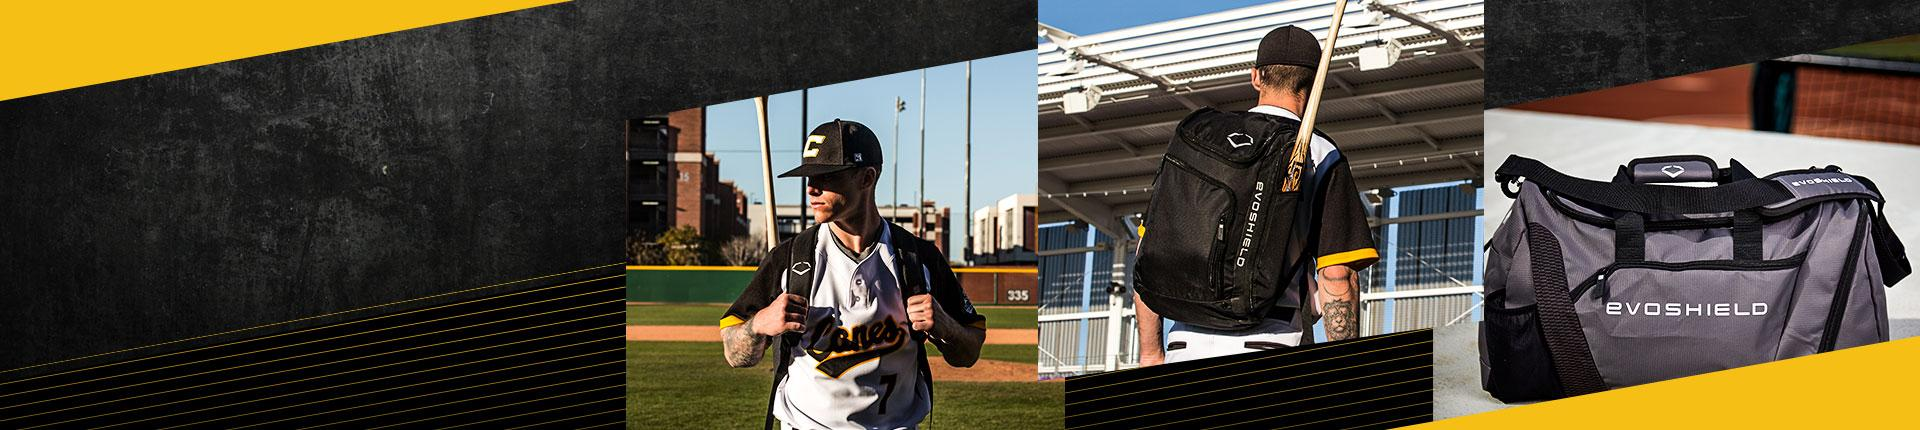 EvoShield Bag Banner